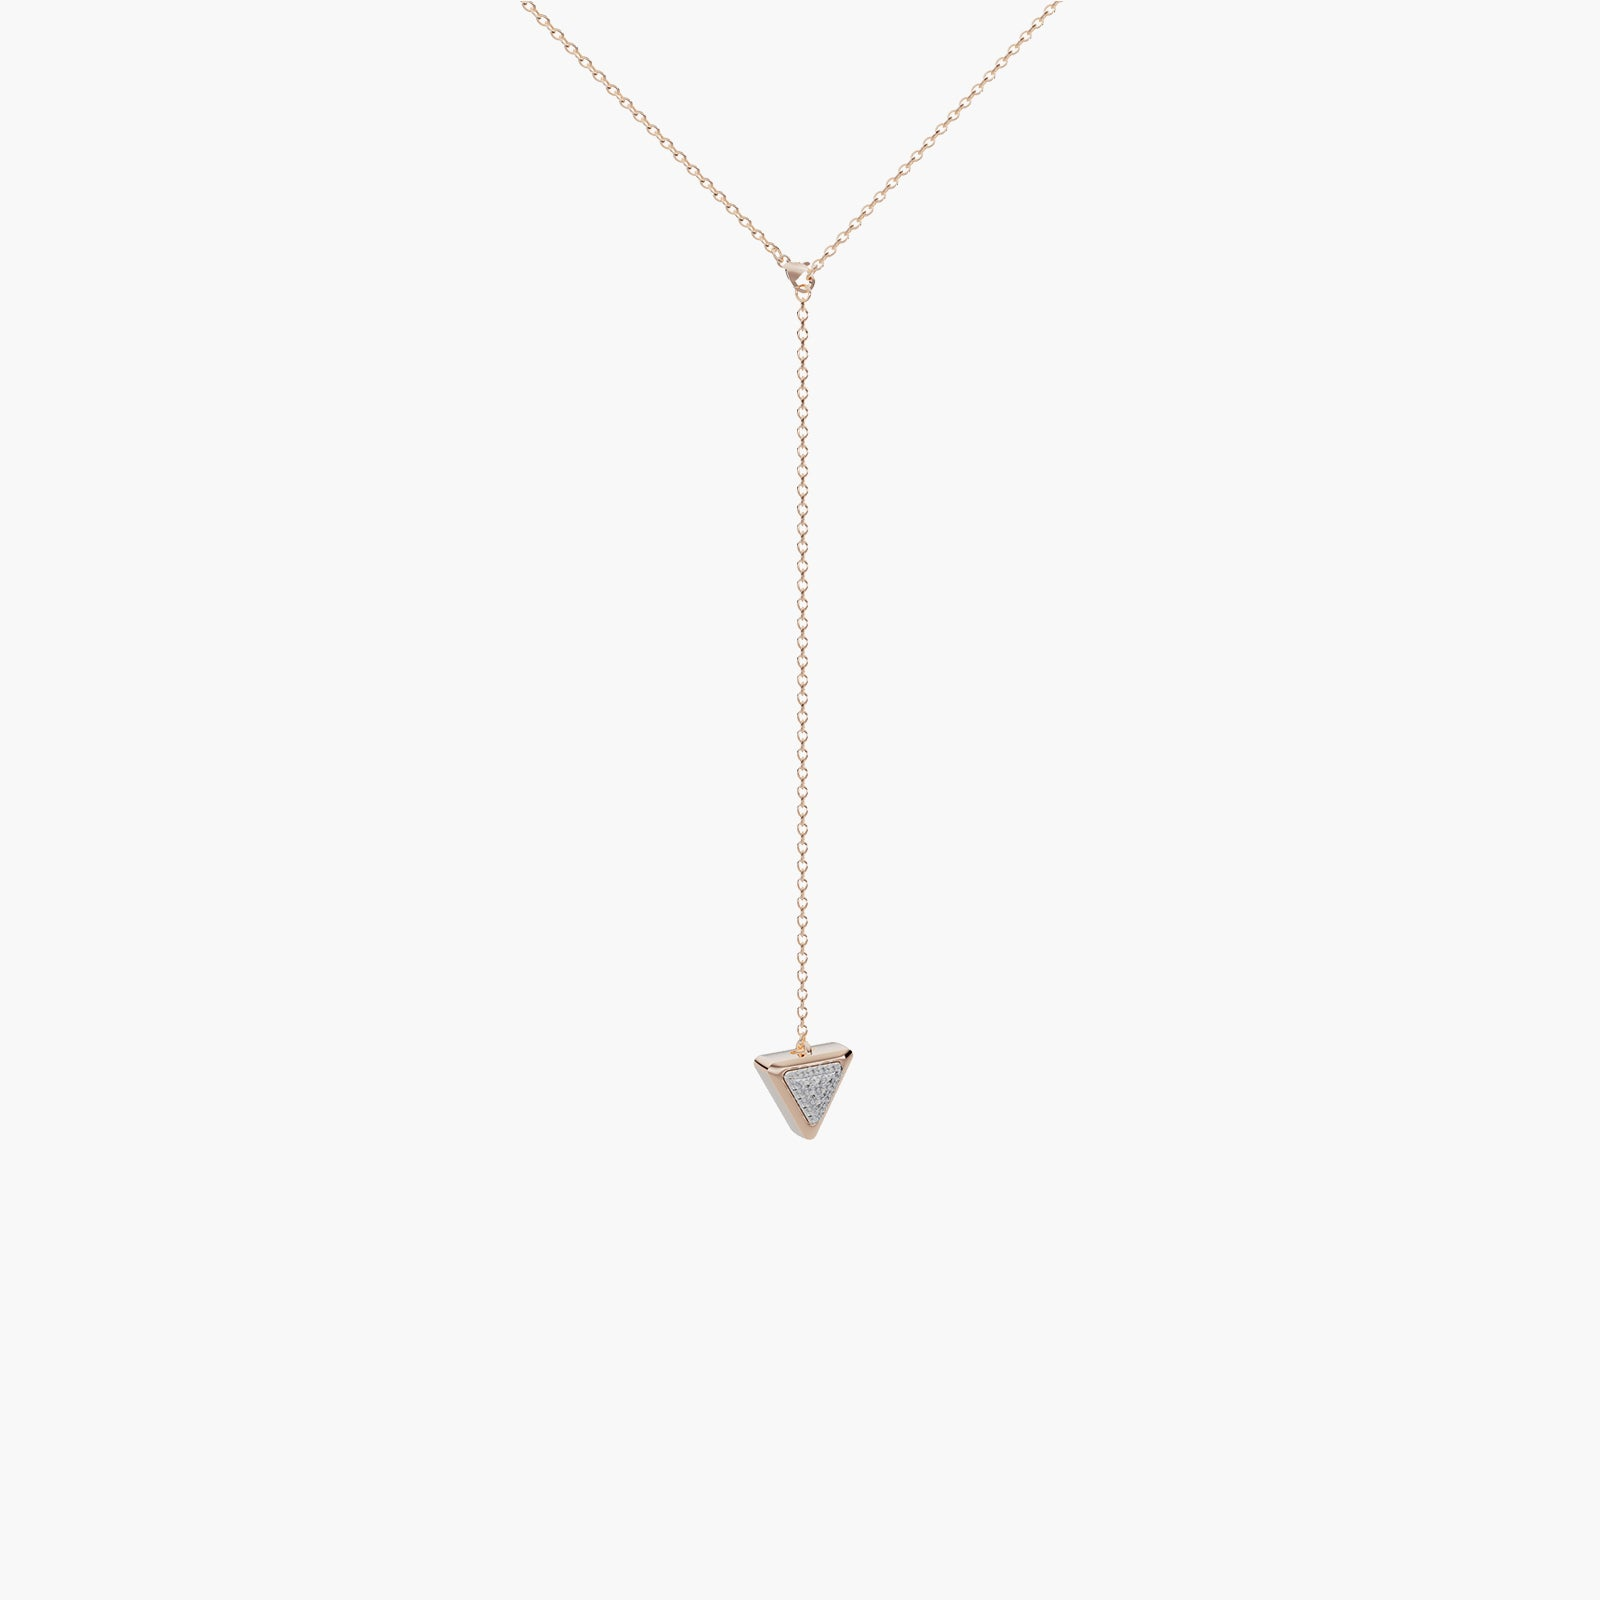 Necklace One Mirror Exquisite Rose Gold Onix and Diamonds